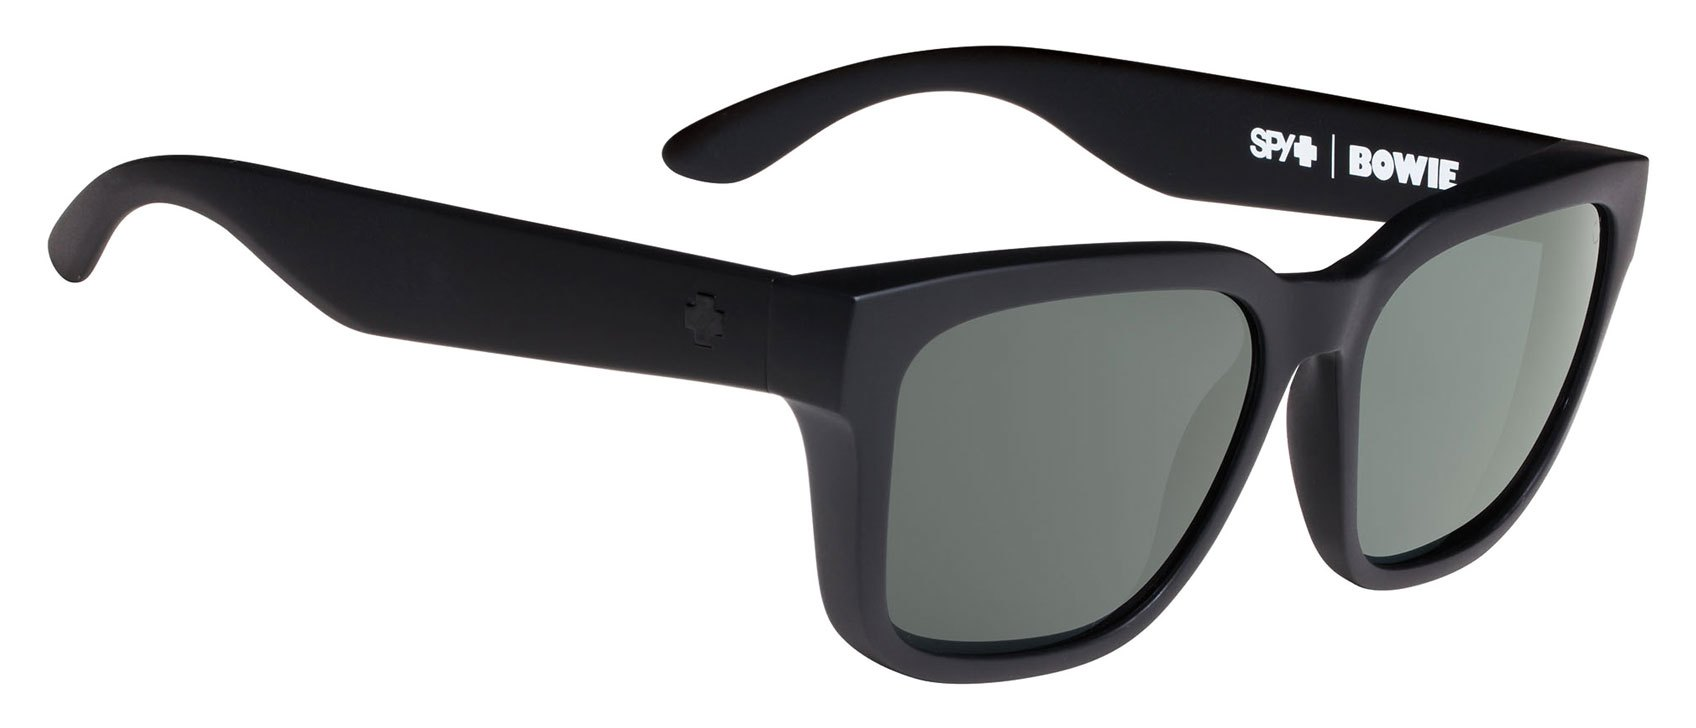 23766157a9 Spy Bowie Sunglasses - Cycle Gear